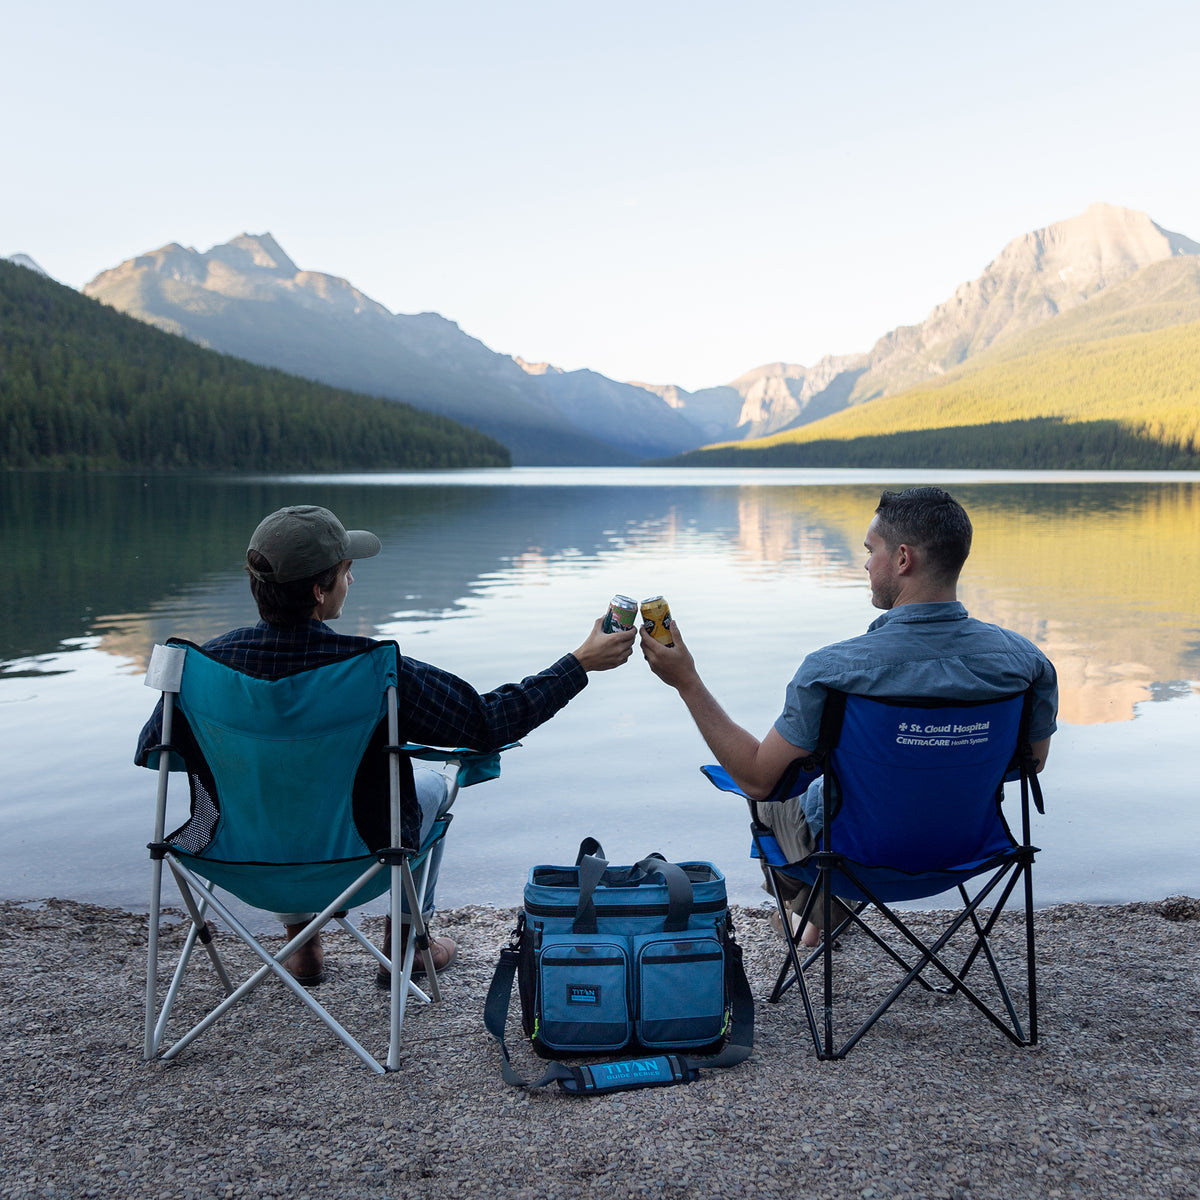 Titan Guide Series™ 36 Can Cooler - Lifestyle, having a drink next to the lake